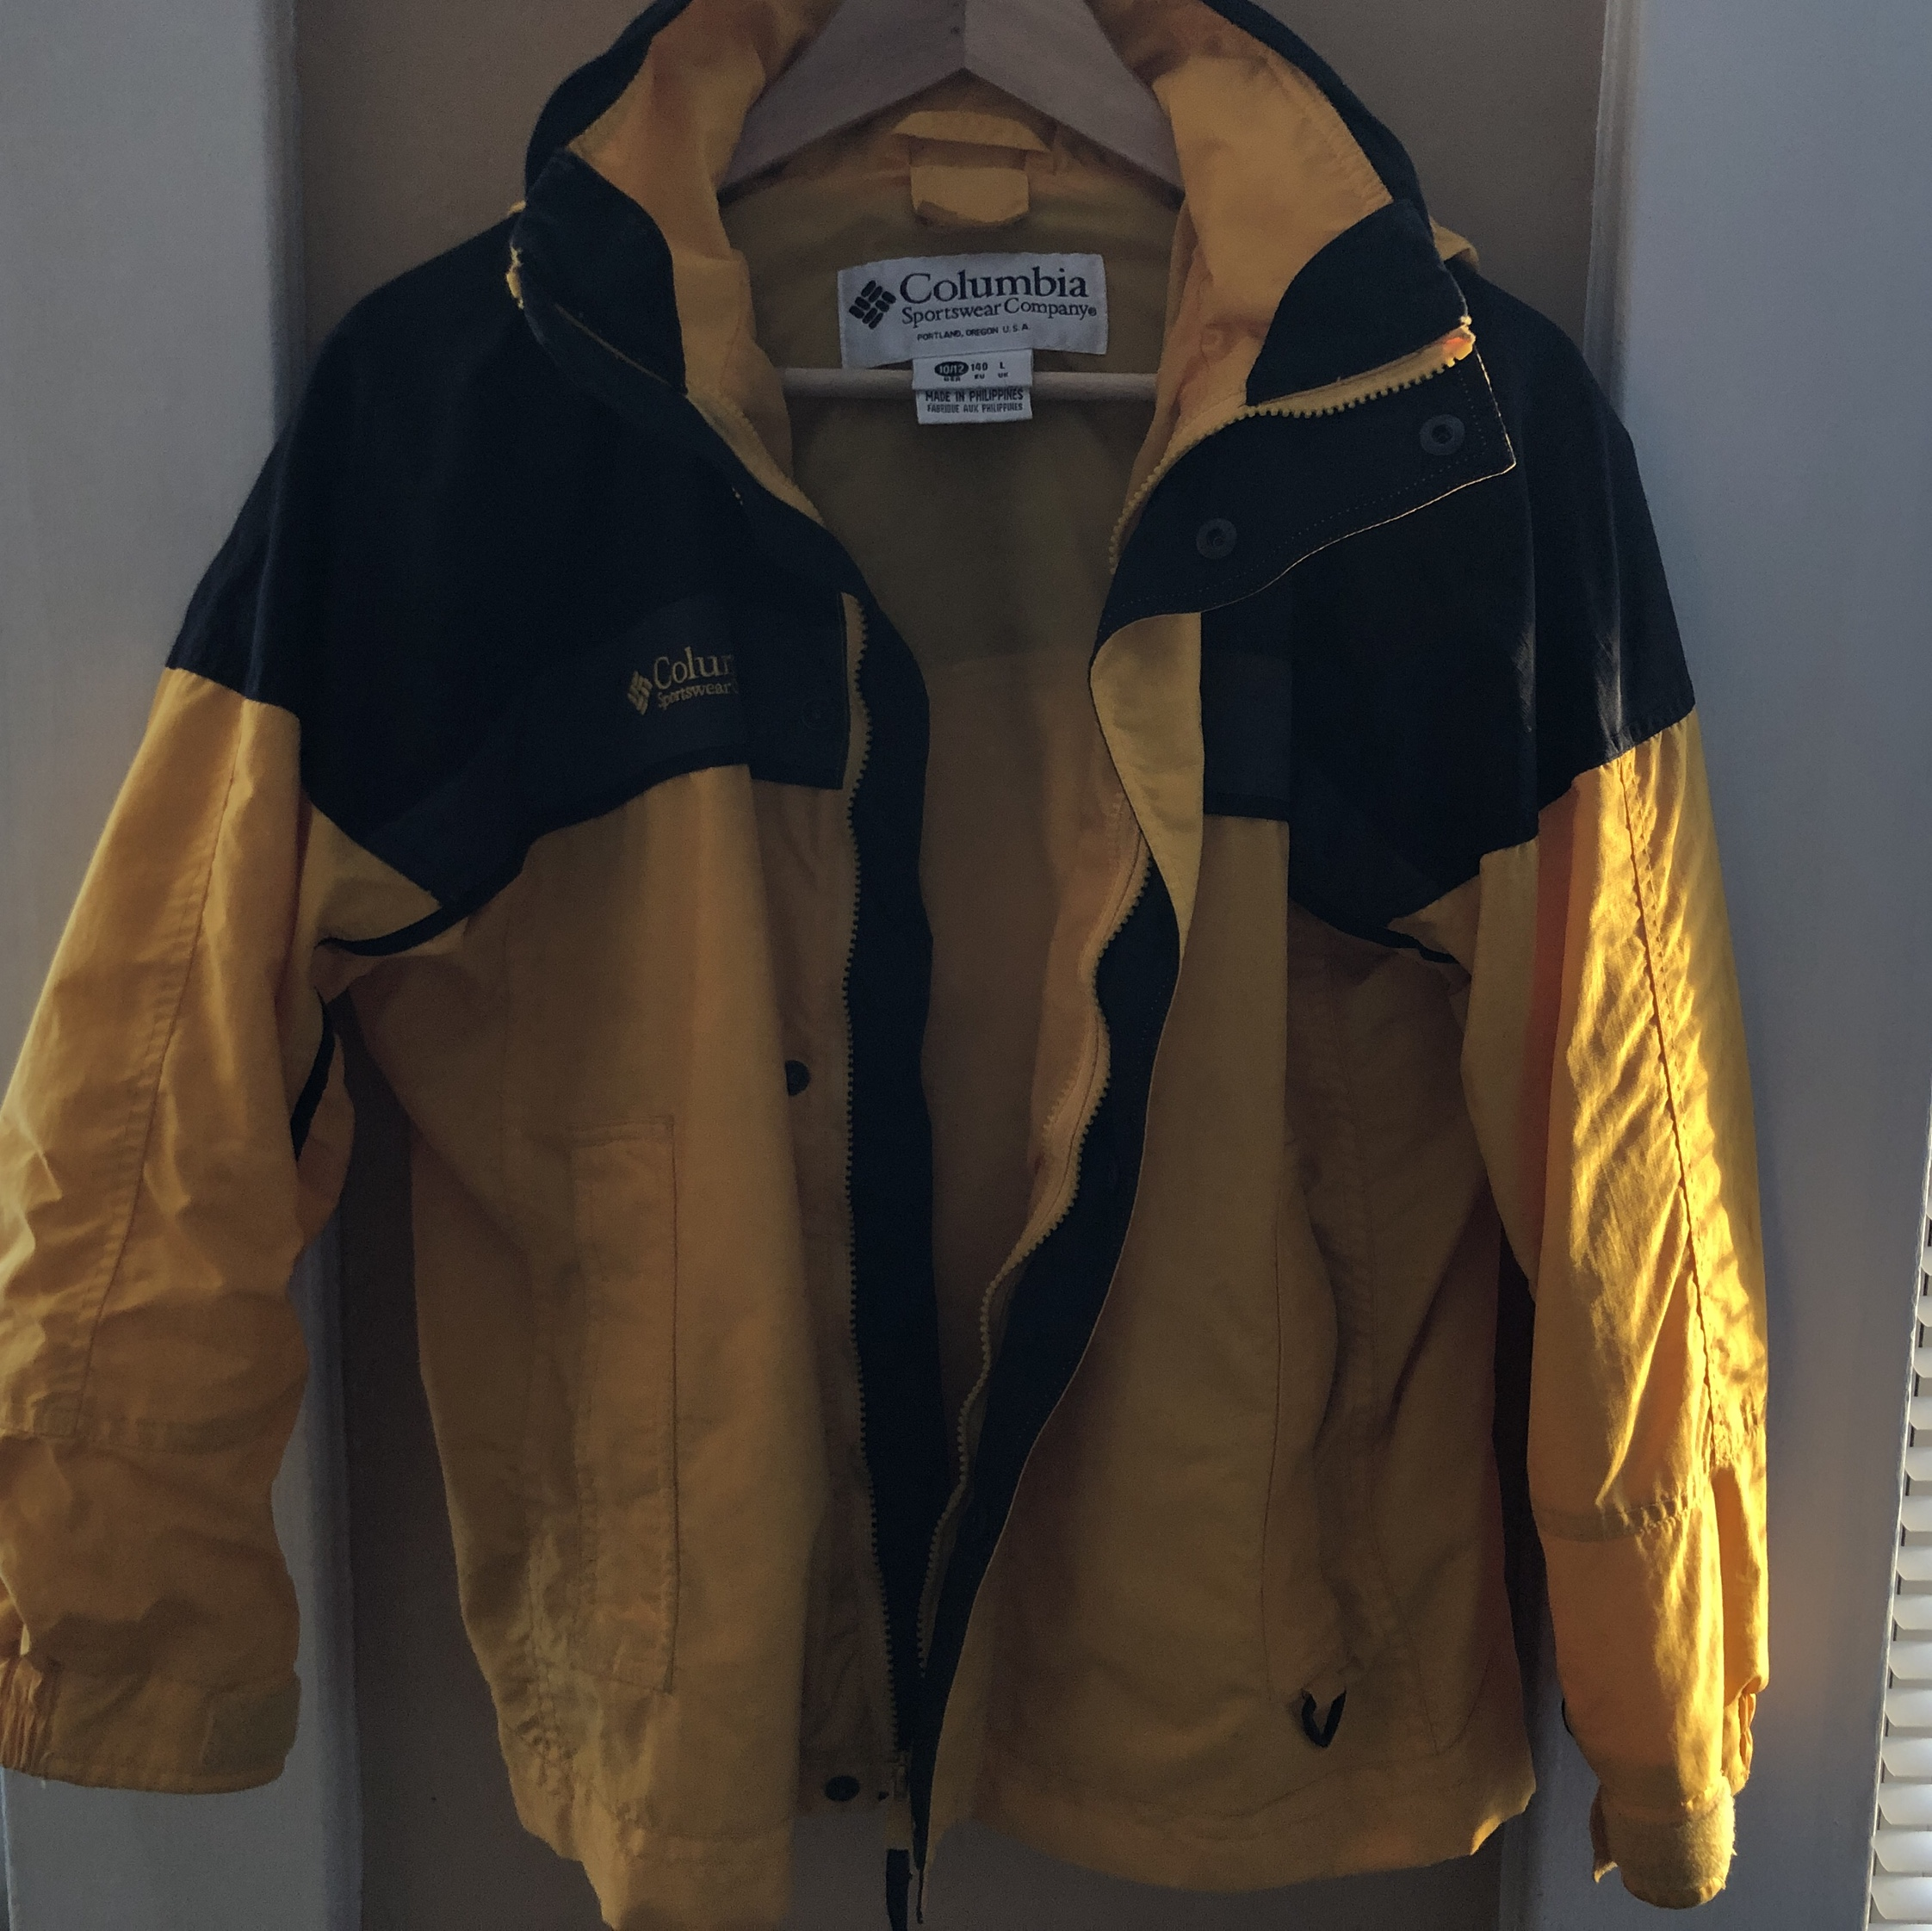 b68e1ab0f0b Yellow Columbia sportswear company windbreaker - marked L me - Depop